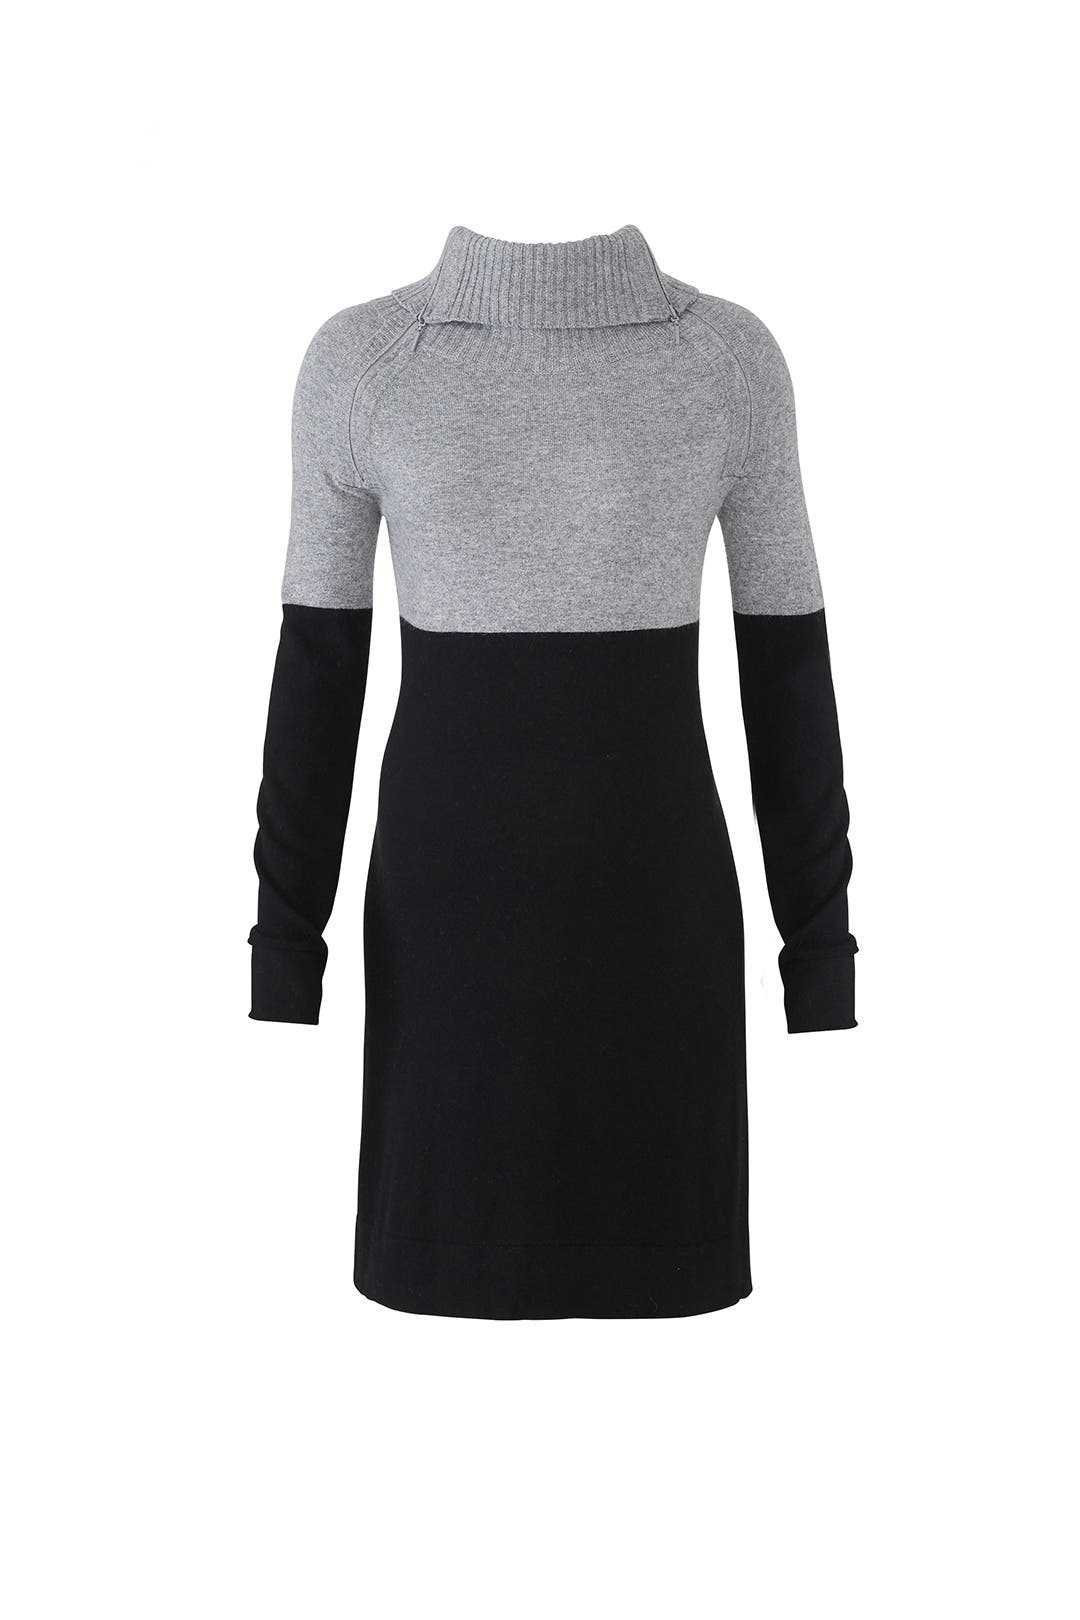 9f1c19dec1cfa Flavia Knit Maternity Tunic by Seraphine for $30 | Rent the Runway